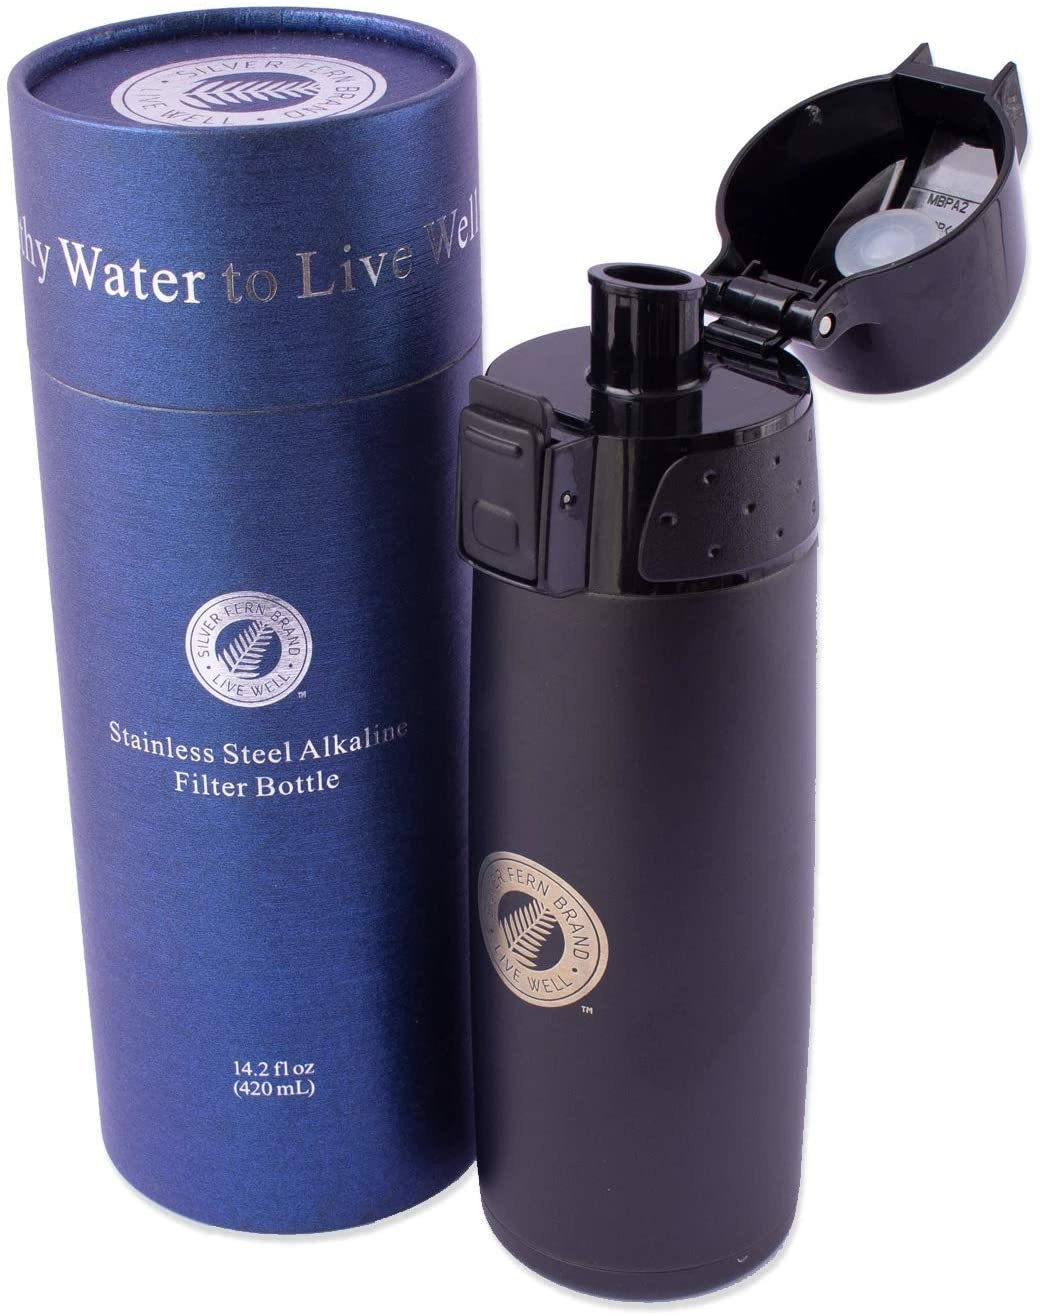 Stainless Steel Alkaline Water Filter Bottle - Black - 14.2 Fl. Oz. Capacity - Makes Up to 200 Gallons of Antioxidant Water with Higher pH - Improves Digestion, Hydration and Minerals